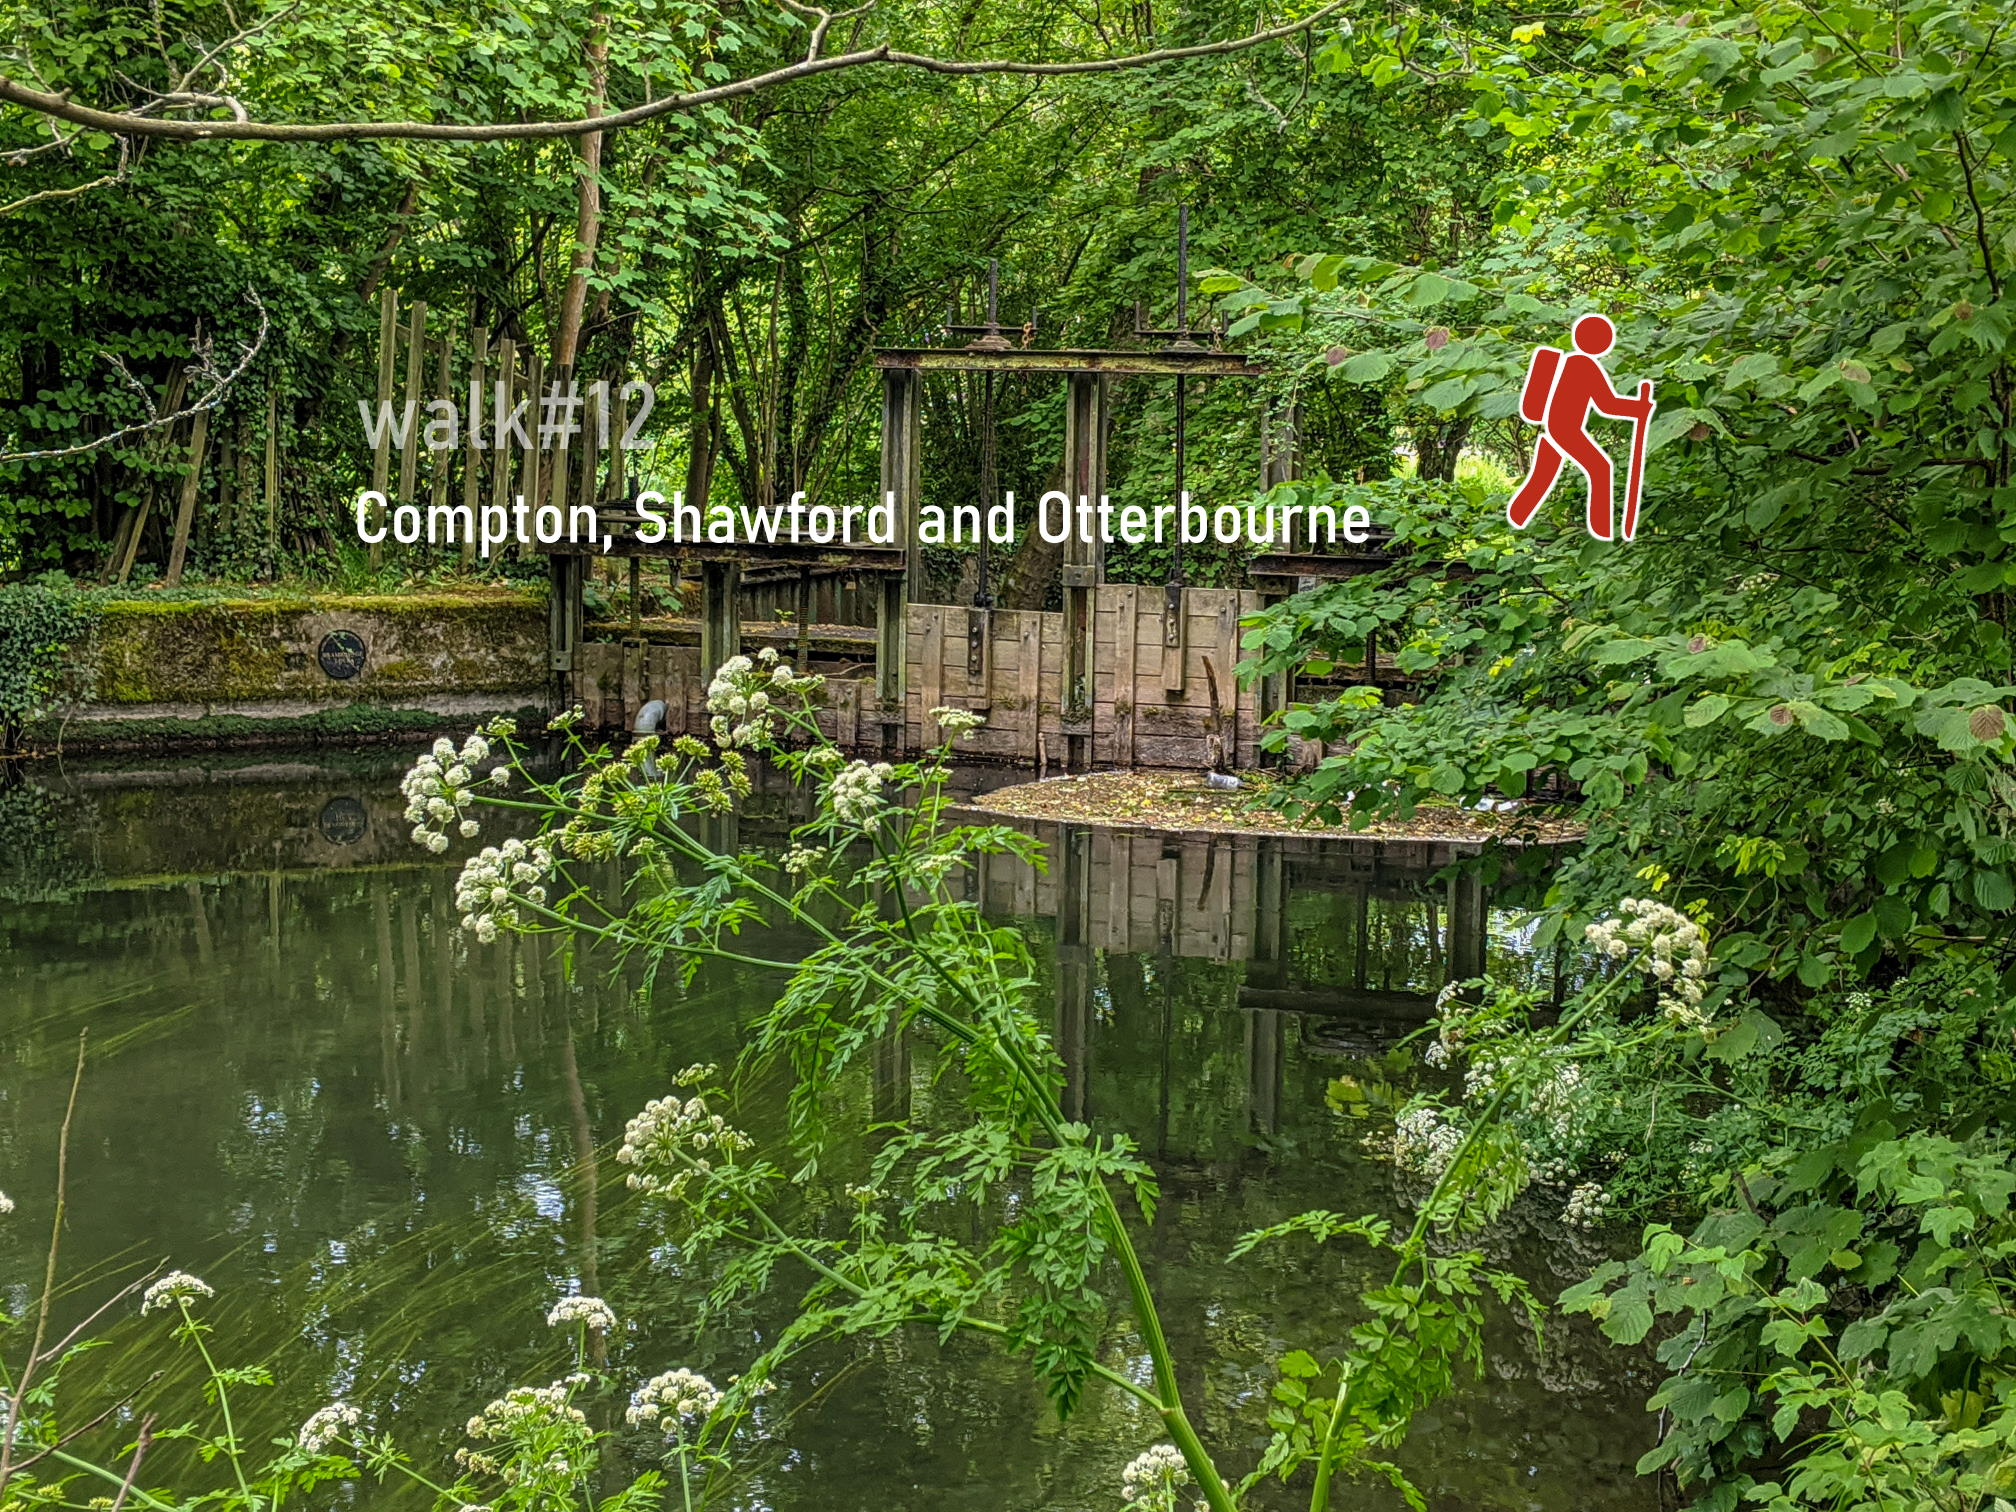 walk#12 Compton, Shawford and Otterbourne